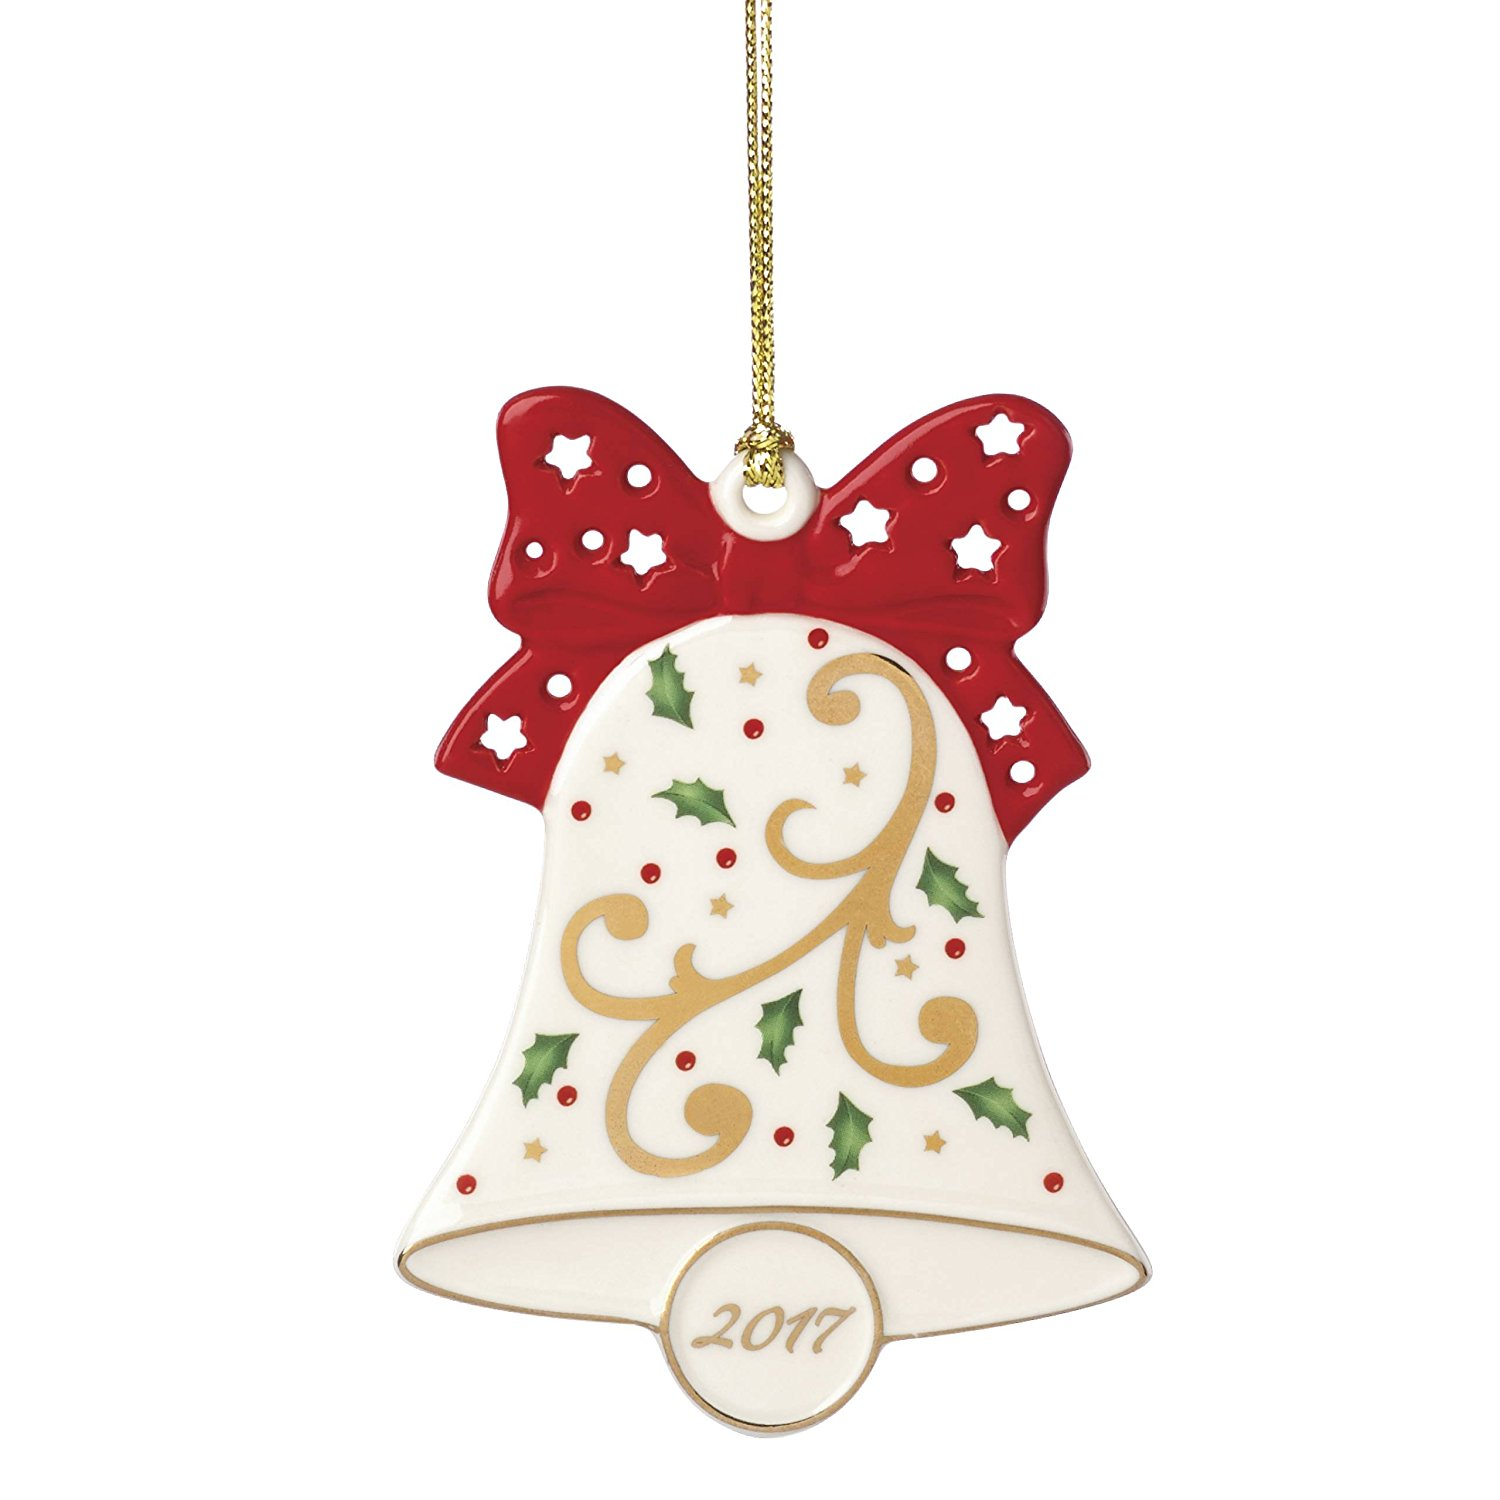 2017 Lenox Joyous Tidings Holly and Berry Covered Bell Christmas Ornament 869901